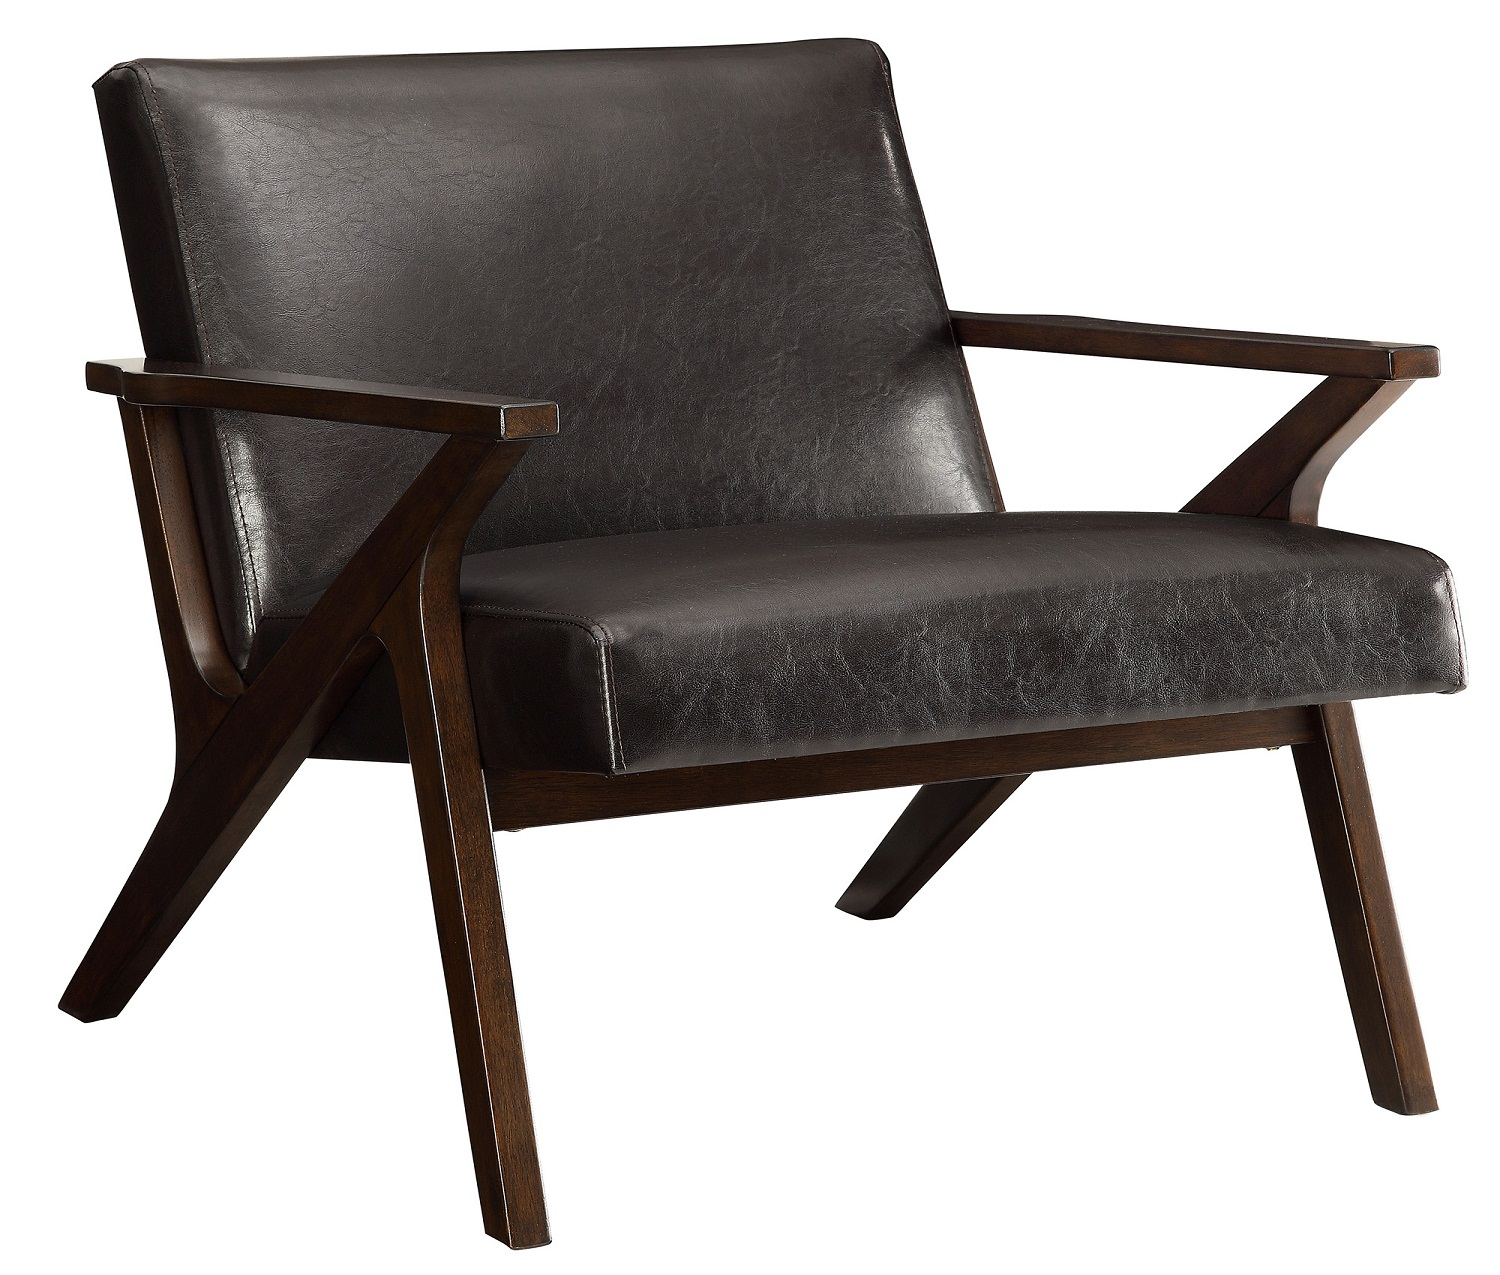 BESO-ACCENT CHAIR-BROWN, 841173025281, Accent Chairs, BESO-ACCENT CHAIR-BROWN from Dropship by Midha Furniture serving Brampton, Mississauga, Etobicoke, Toronto, Scraborough, Caledon, Cambridge, Oakville, Markham, Ajax, Pickering, Oshawa, Richmondhill, Kitchener, Hamilton, Cambridge, Waterloo and GTA area